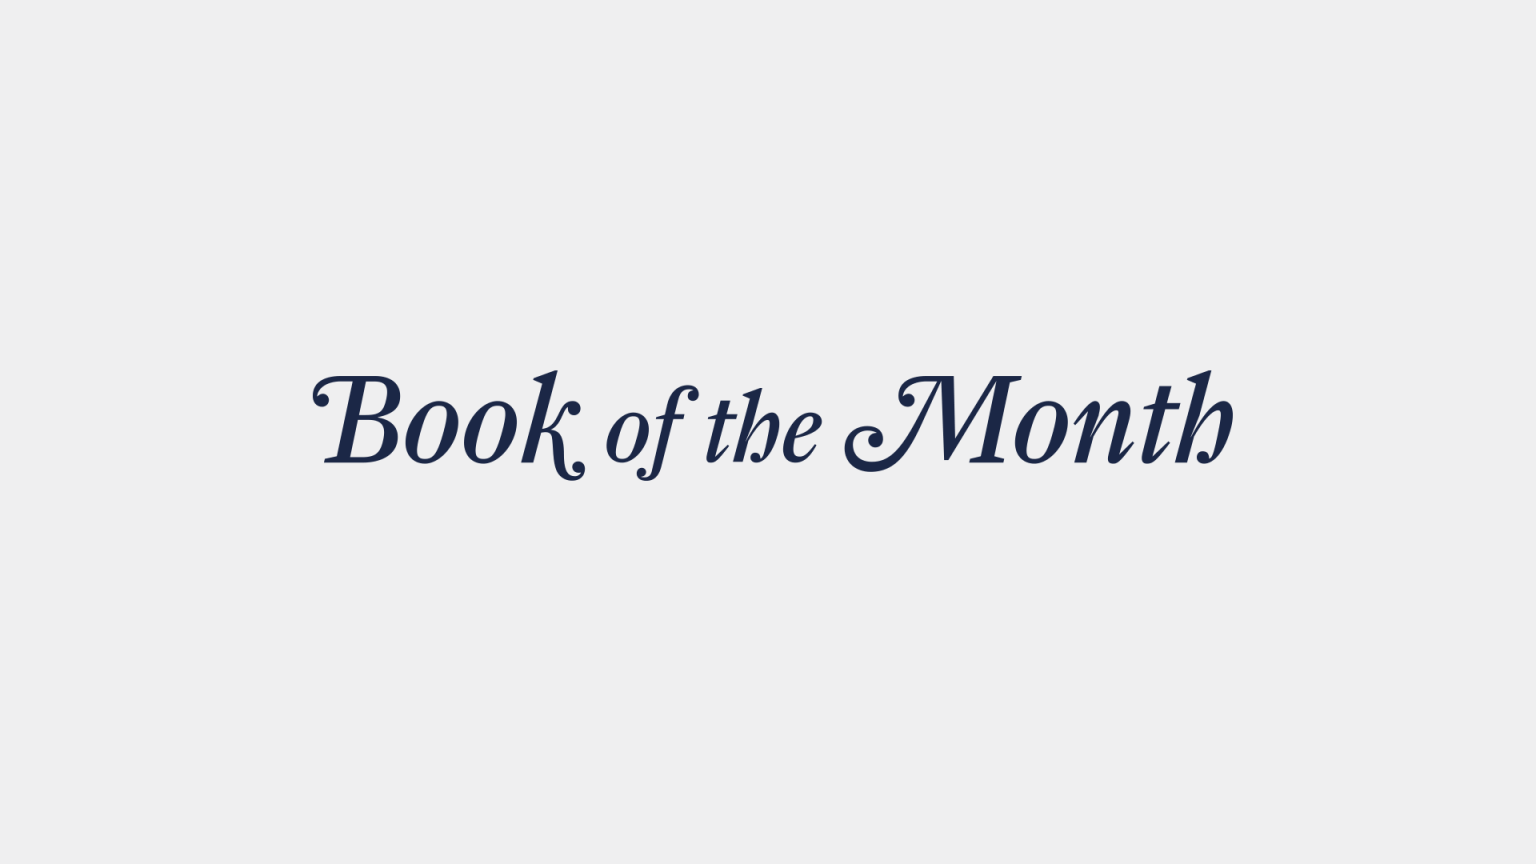 Book of the Month - Brand Refresh